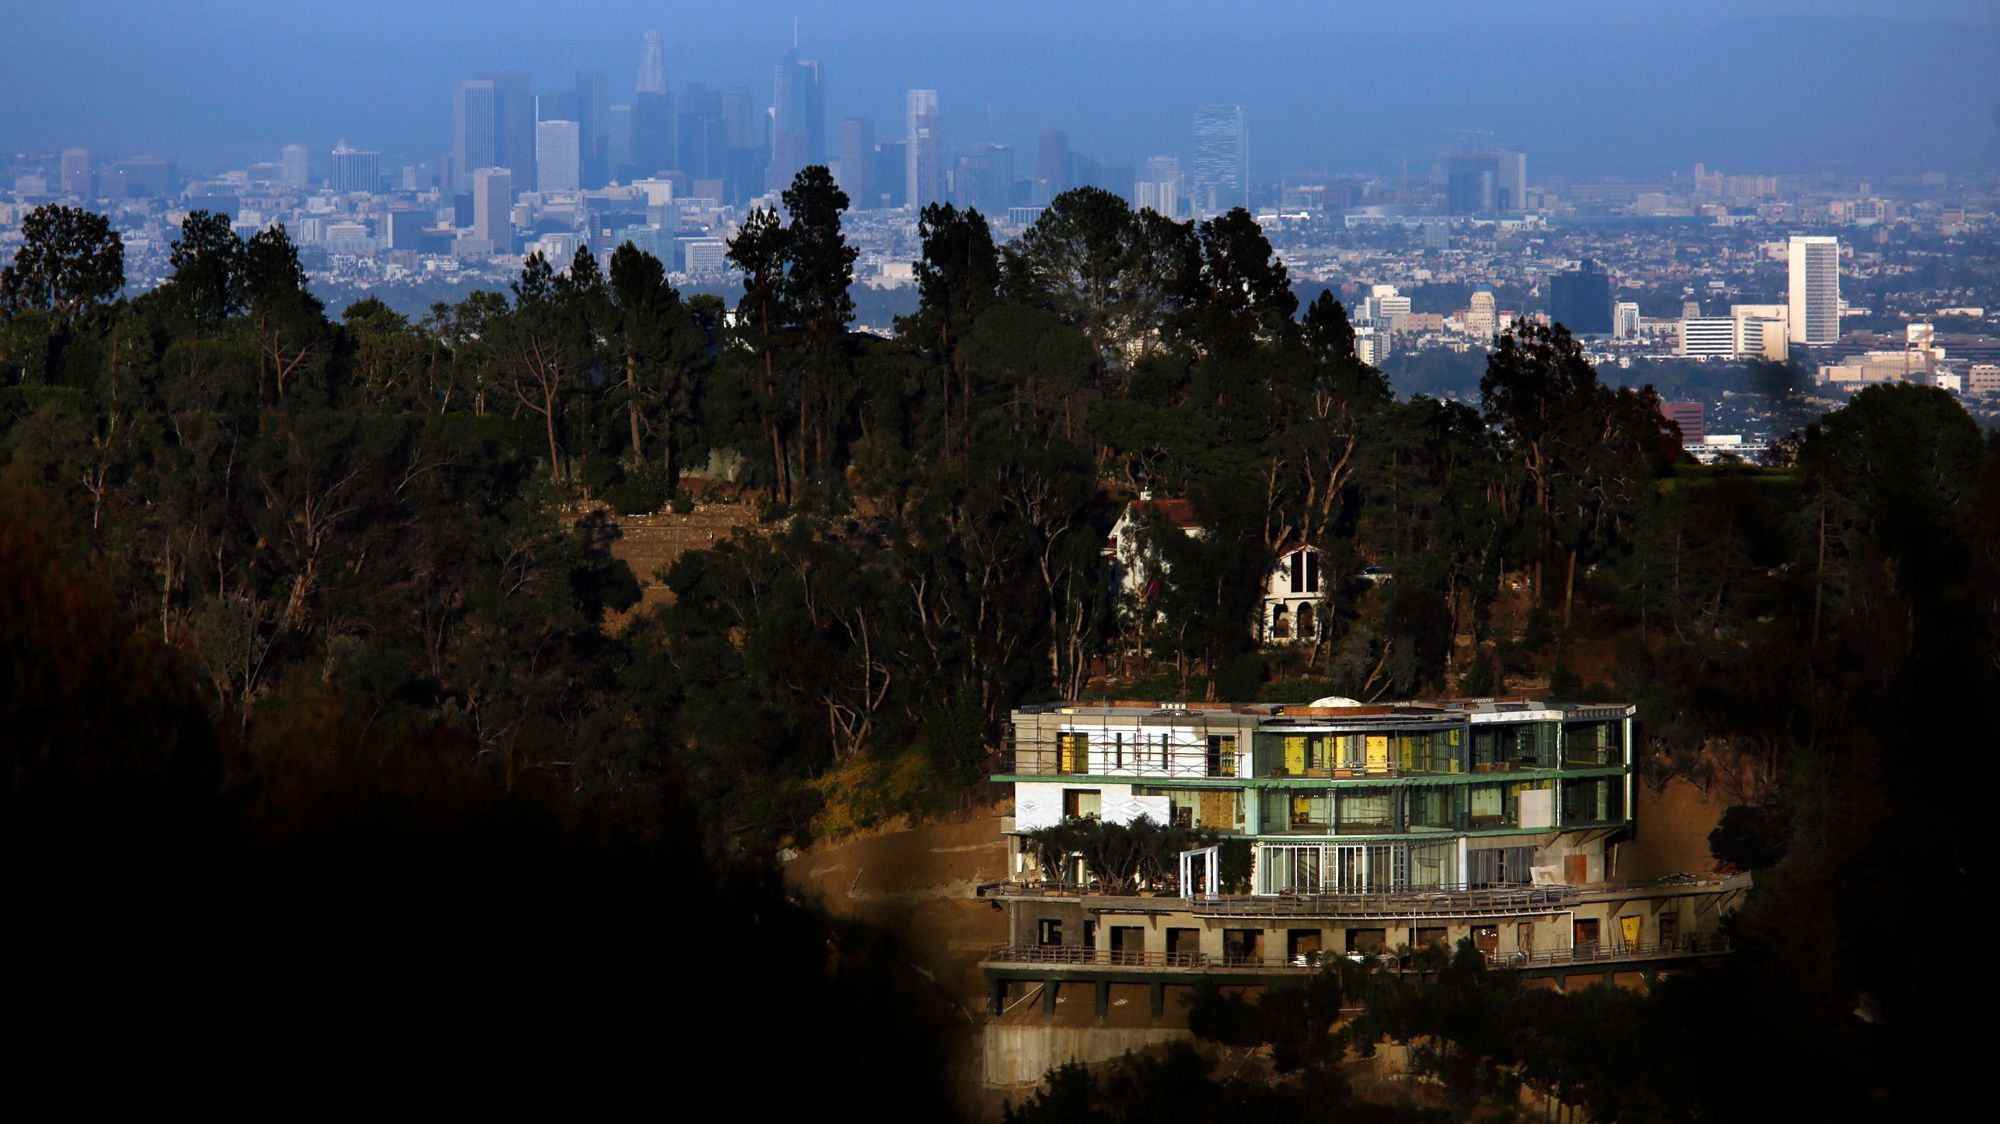 Home to have angered locals is a 30 000 square foot creation of hadid - Bel Air Mega Mansion Developer Mohamed Hadid Sentenced With Community Service Fines La Times